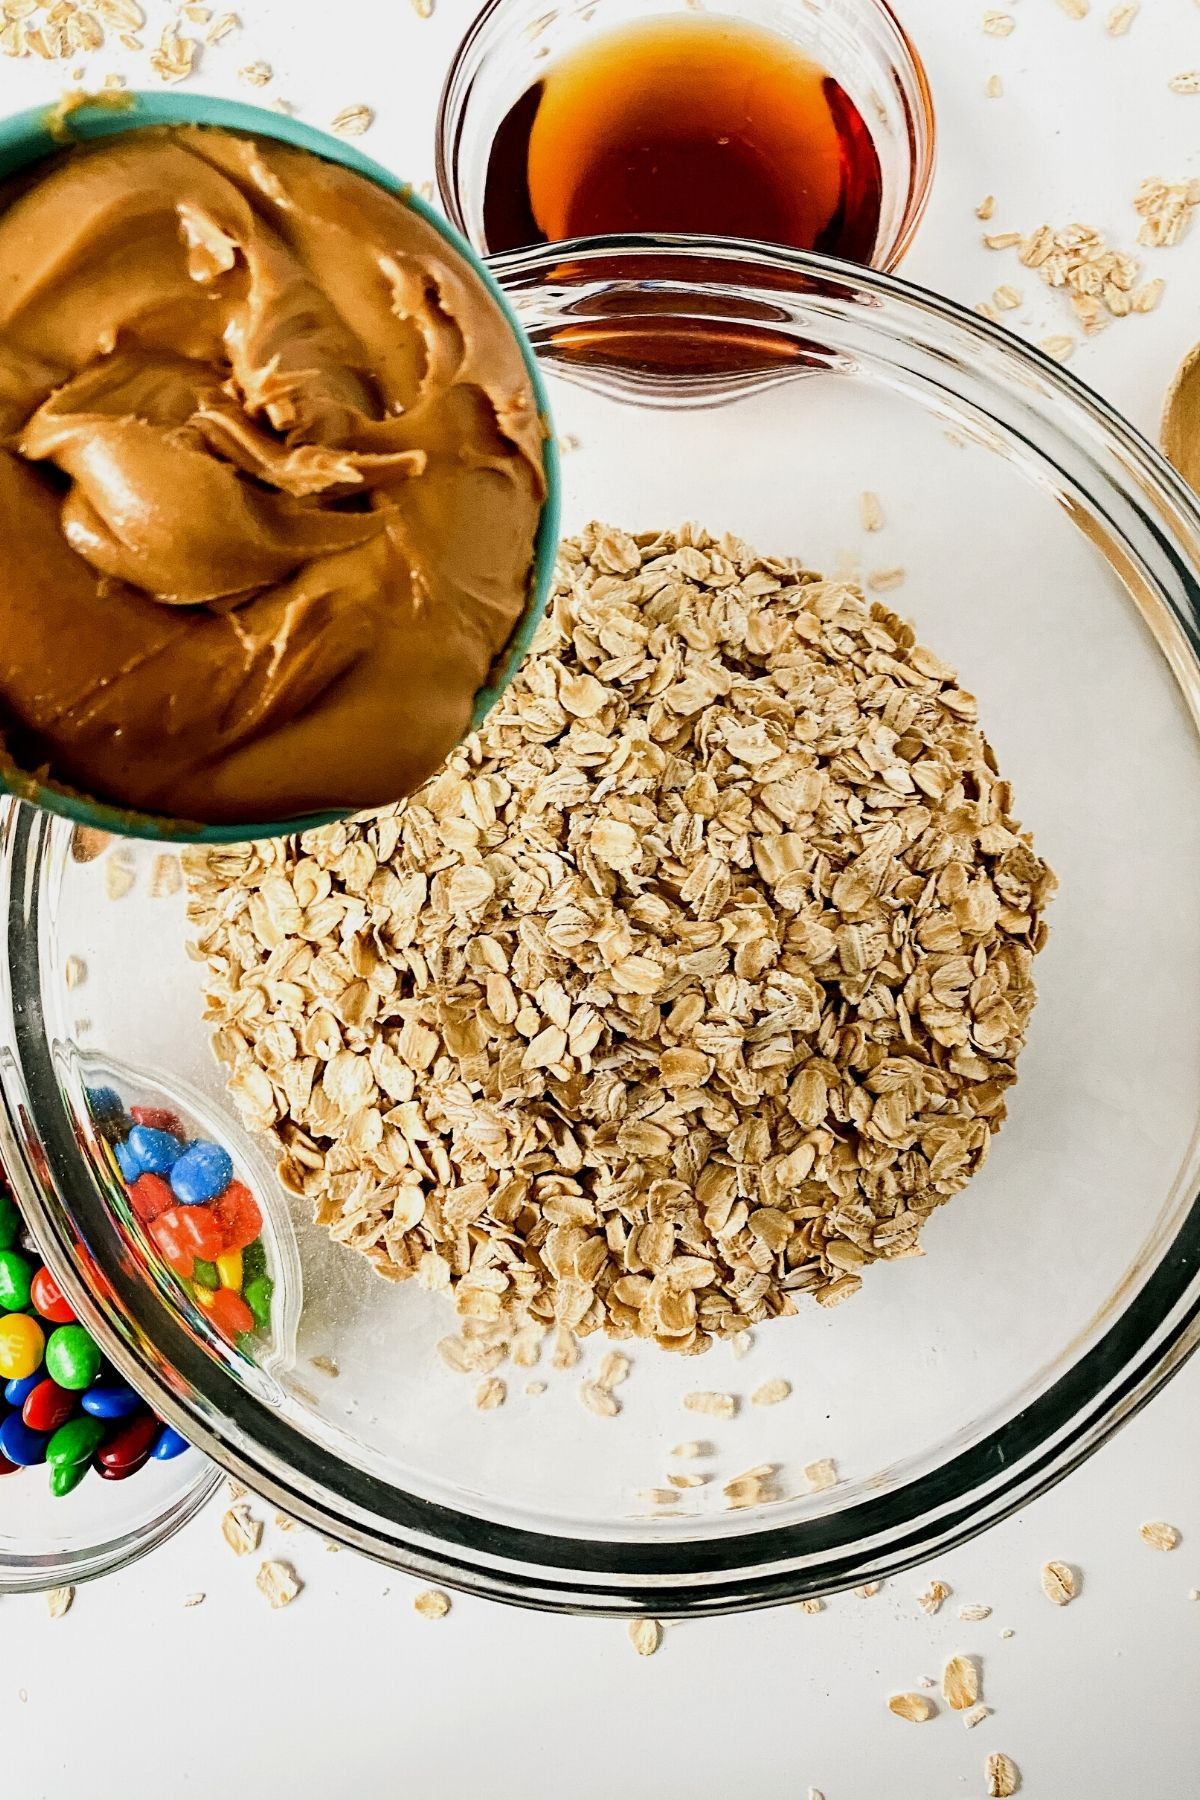 Adding peanut butter to energy bites